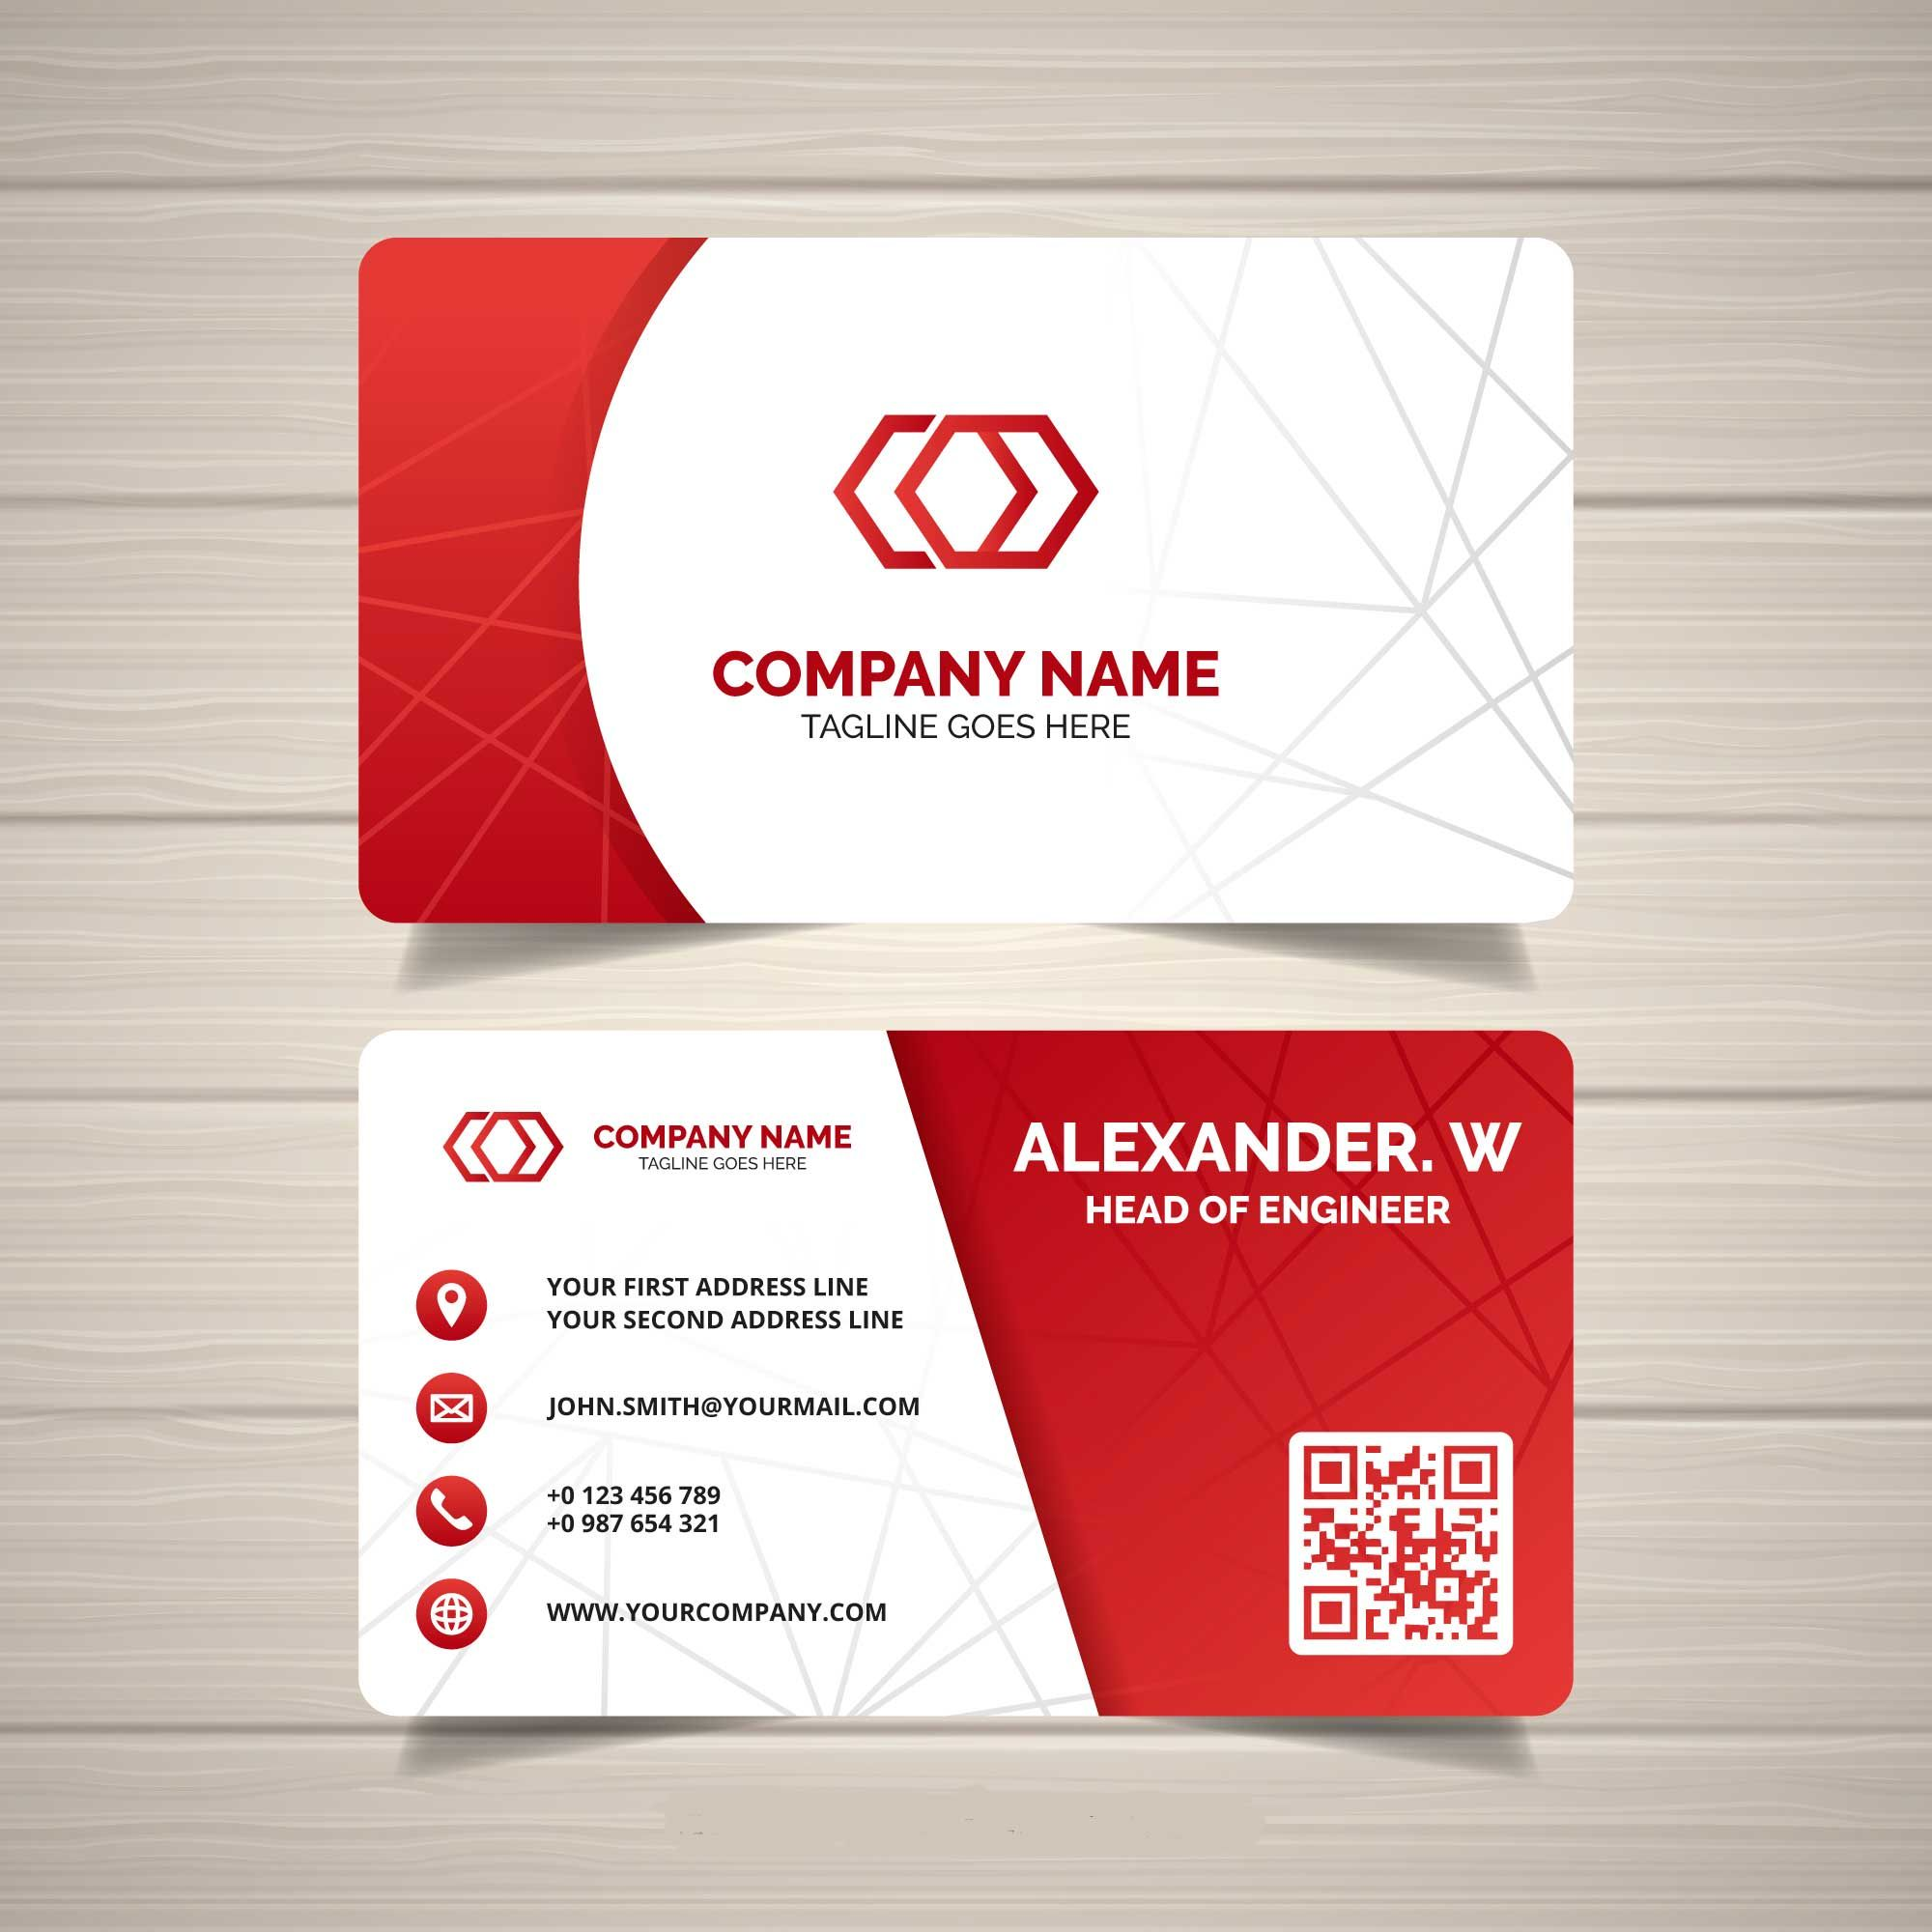 Red Corporate Business card Templates BC5  Company business